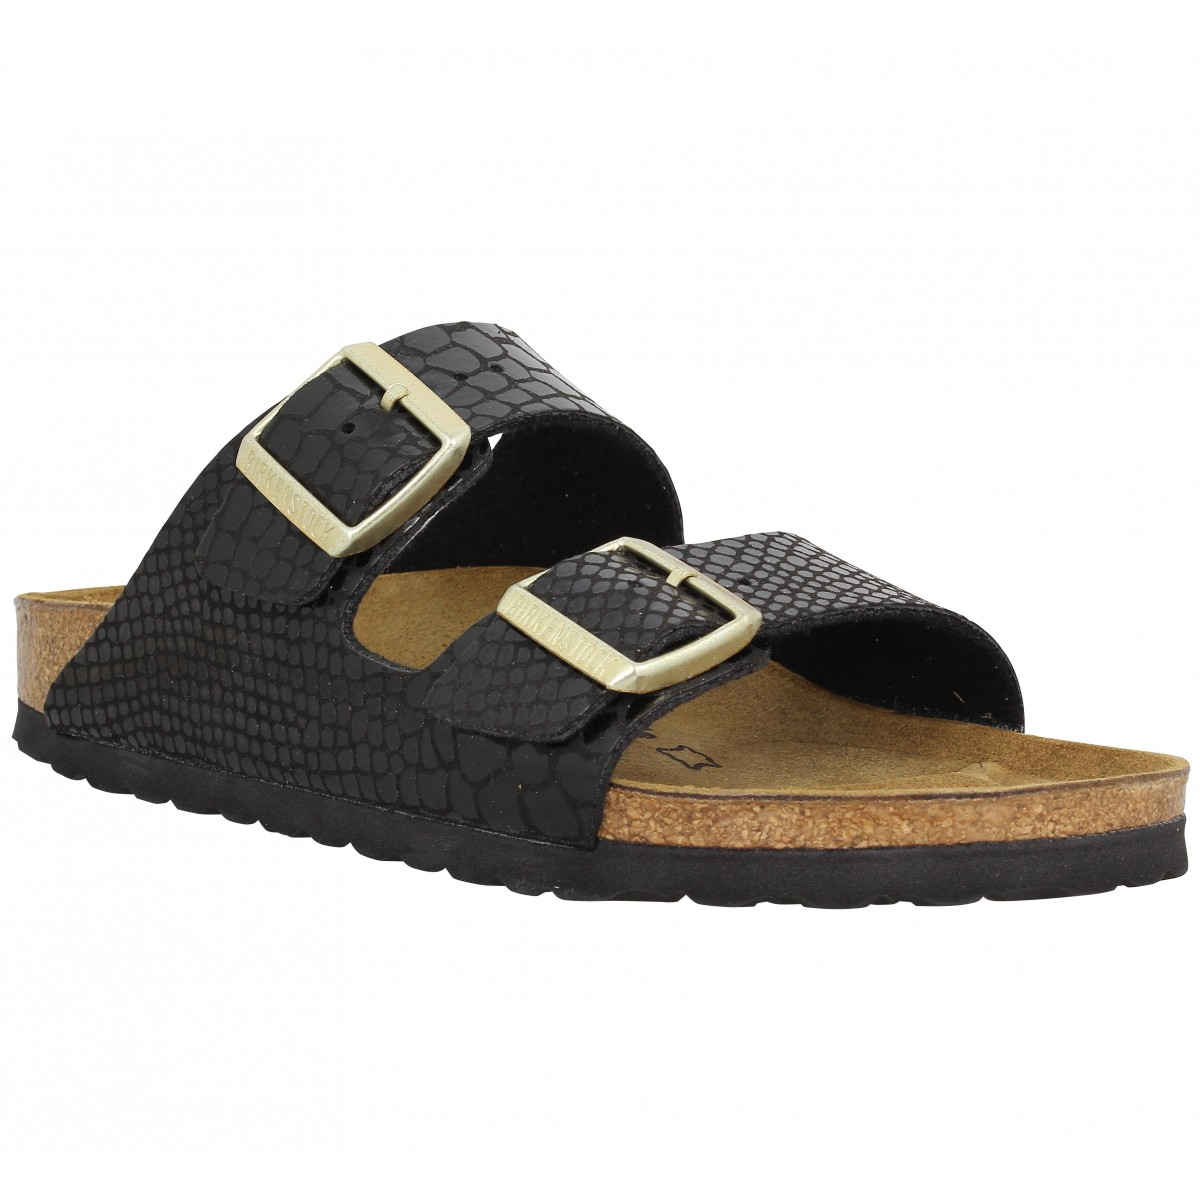 birkenstock arizona birko flor shiny snake femme noir femme fanny chaussures. Black Bedroom Furniture Sets. Home Design Ideas